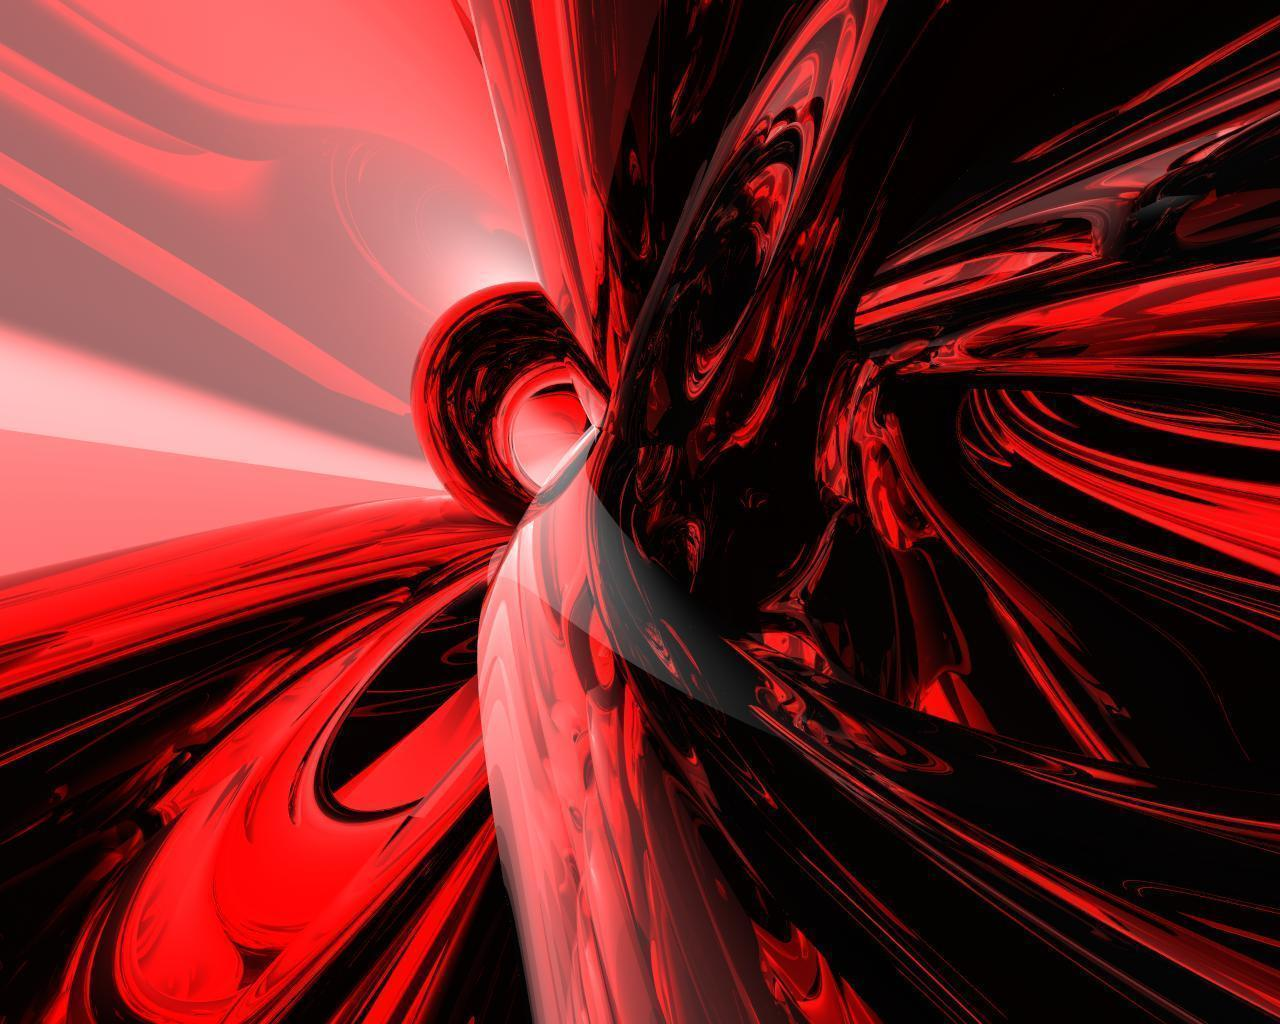 Black And Red Abstract Wallpapers - Wallpaper Cave